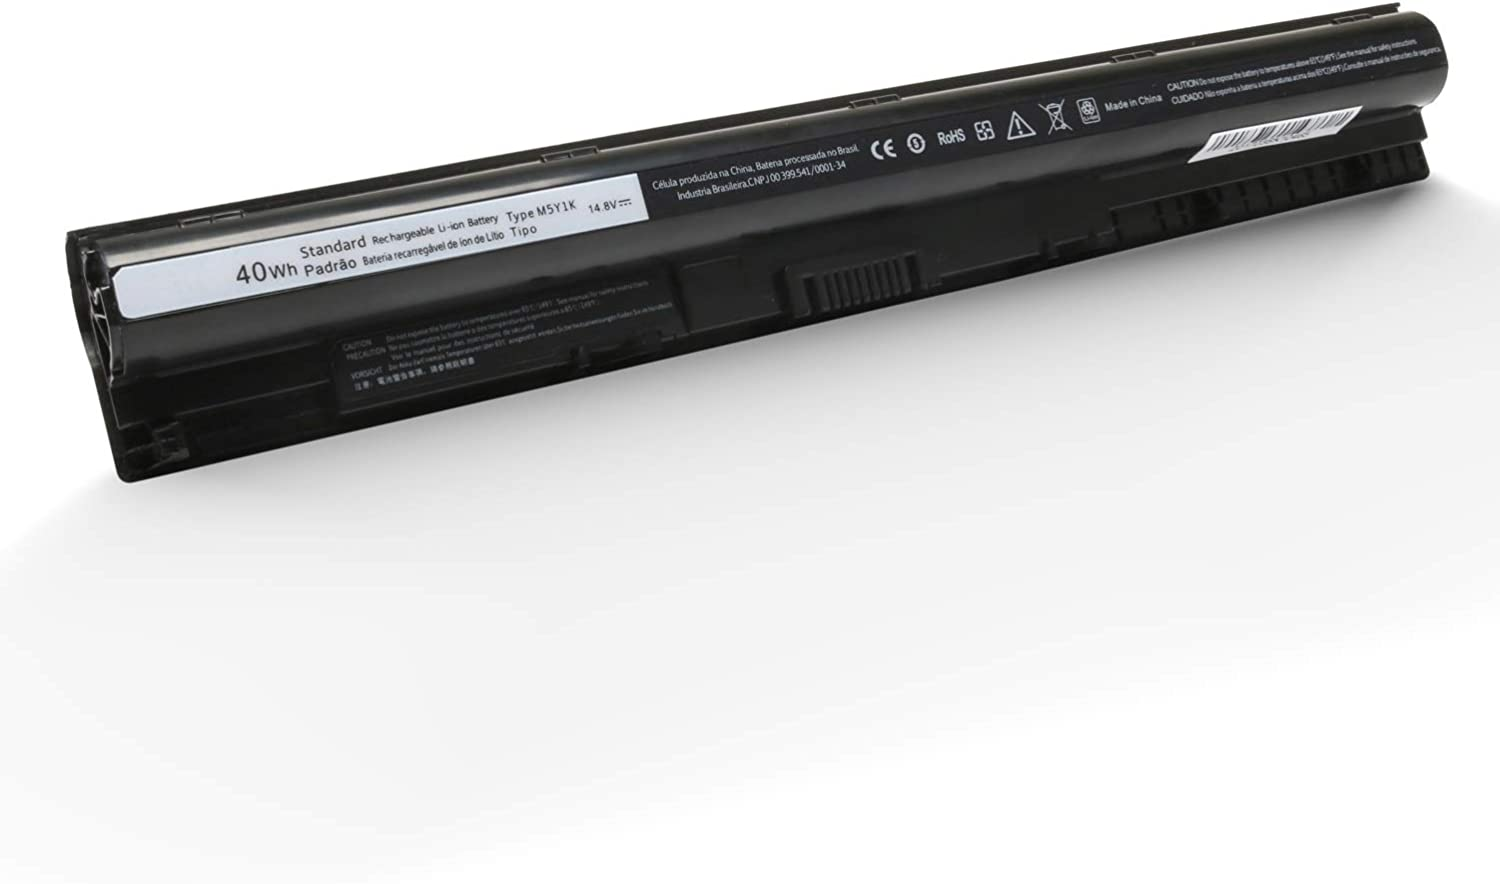 New M5Y1K Laptop Battery for Dell Inspiron 14 15 3000 5000 Series 3451 3458 3551 5451 5458 5558 5559 5758 Vostro 3458 3459 3468 3558 Series Fits 6YFVW VN3N0 GXVJ3 W6D4J HD4J0 [14.8V 40wh 2600mAh]